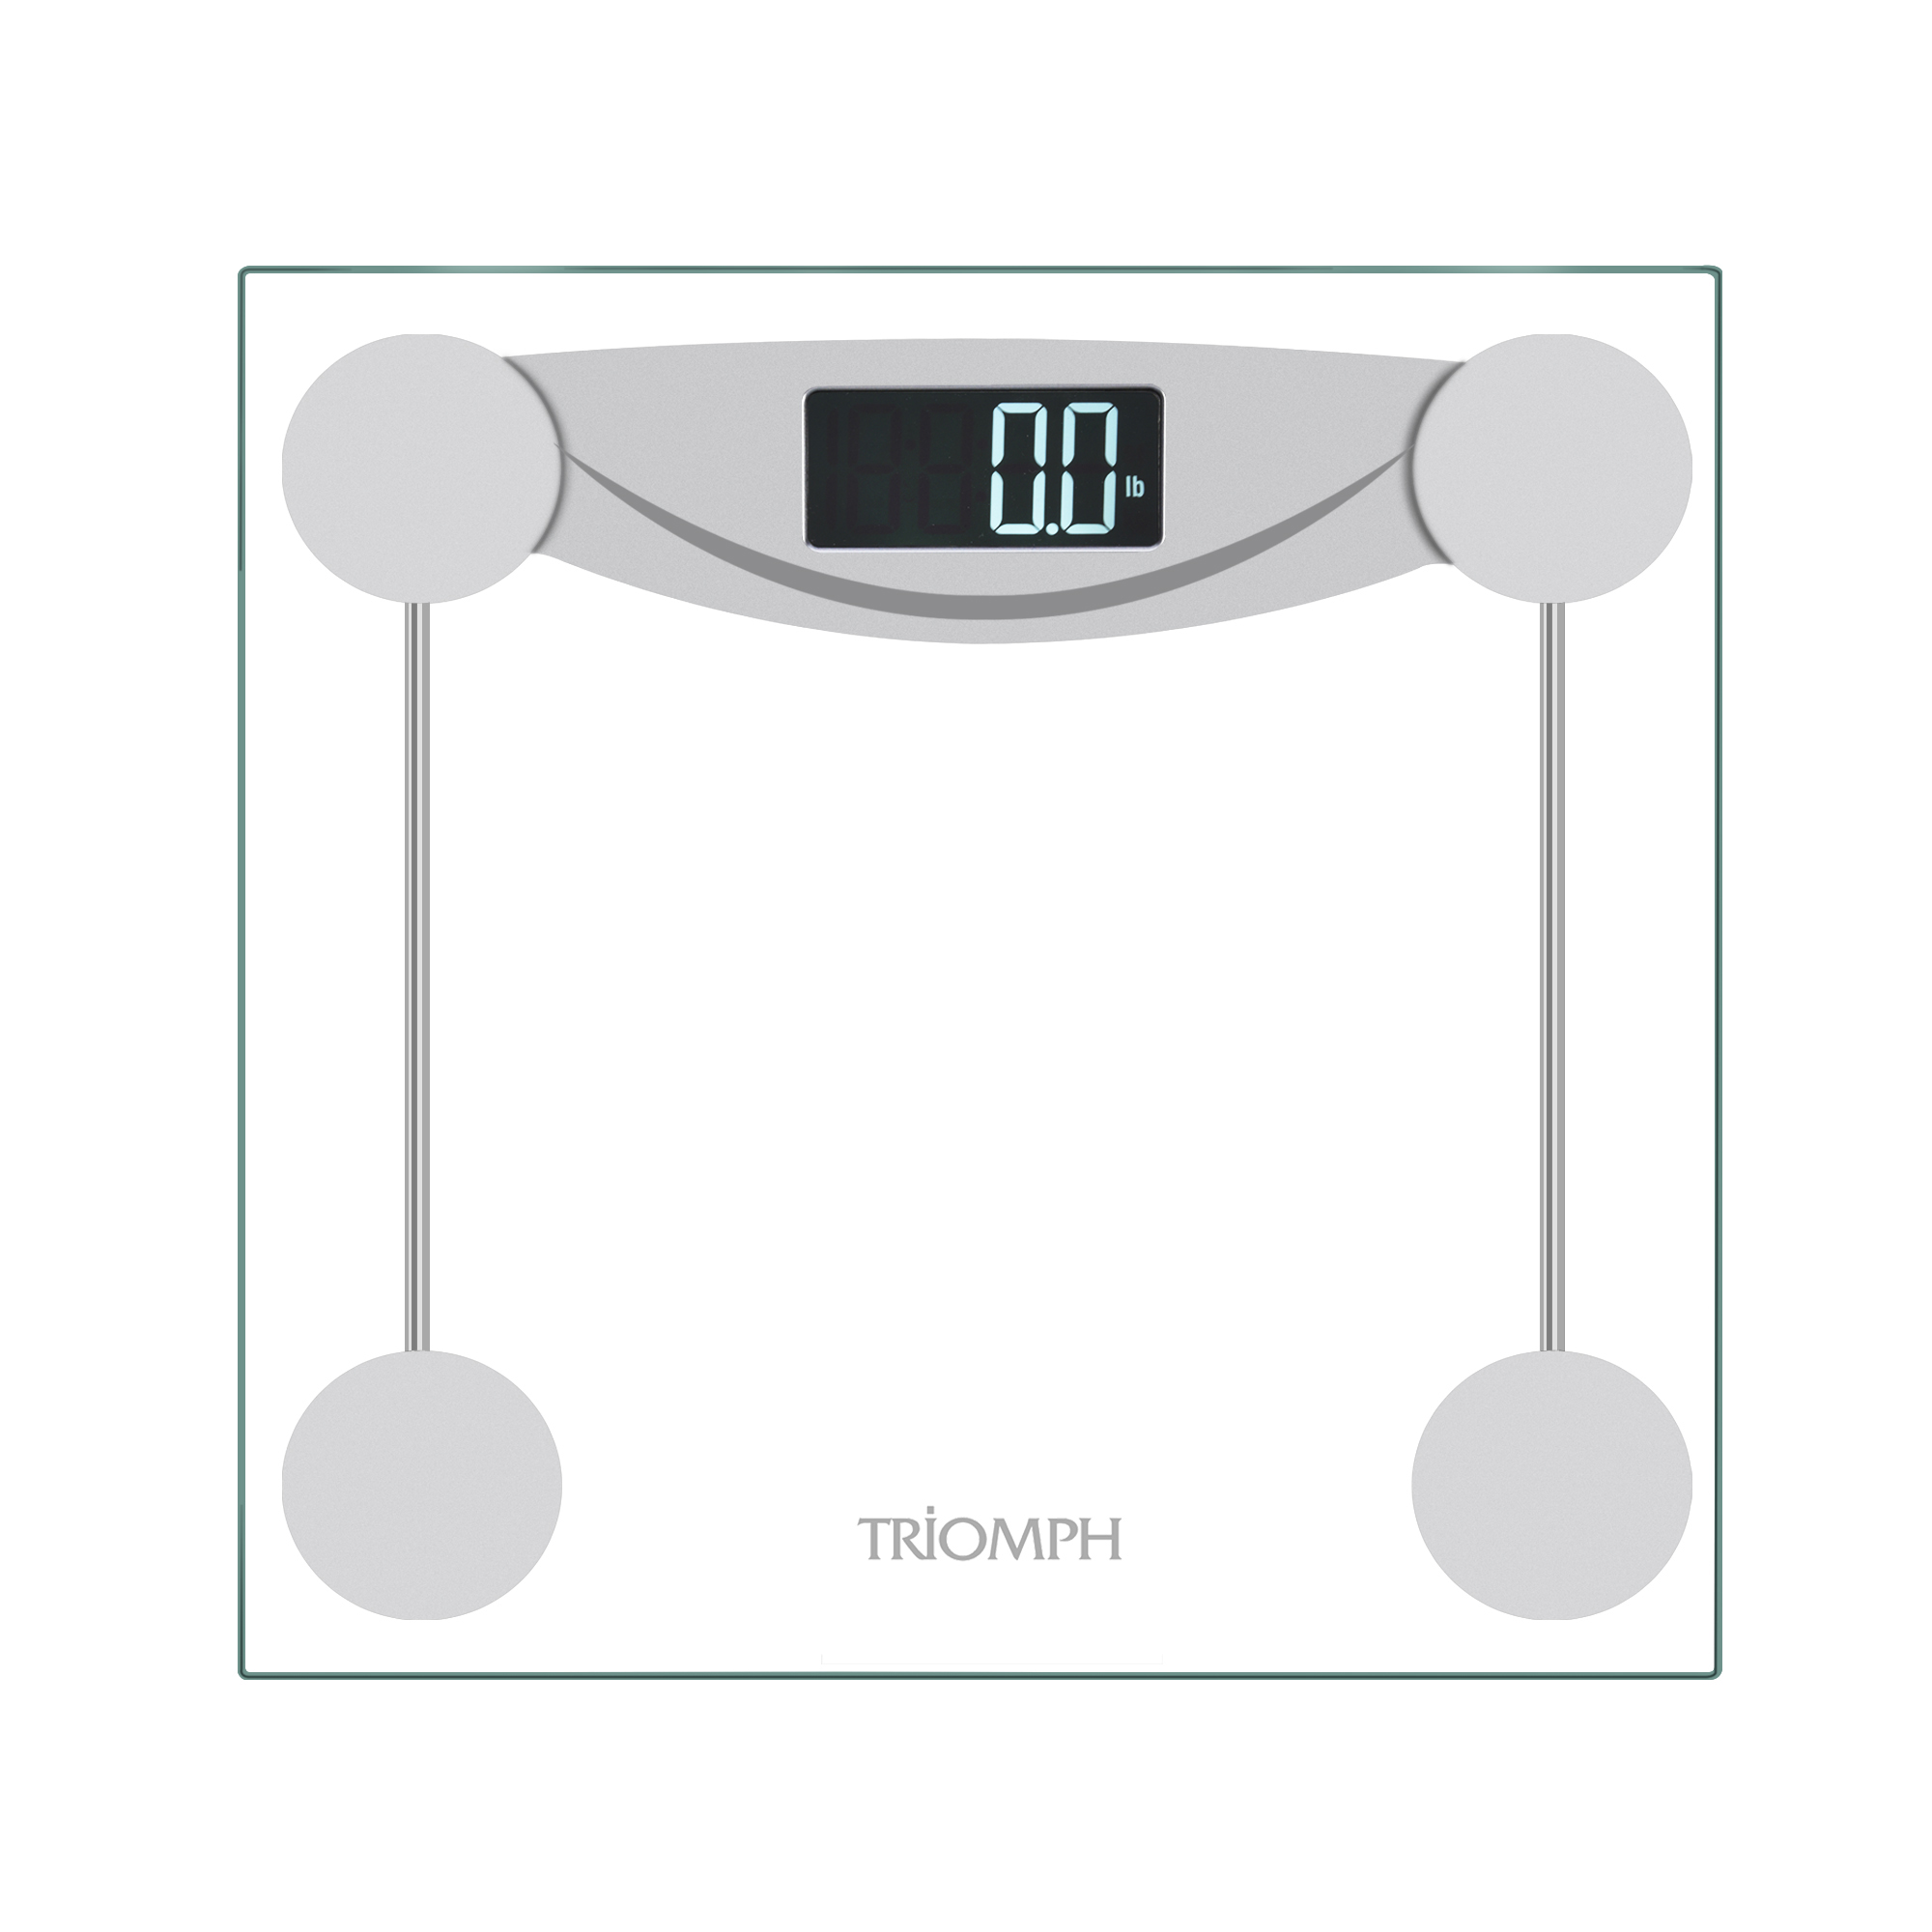 Triomph Body Weight Bathroom Scale